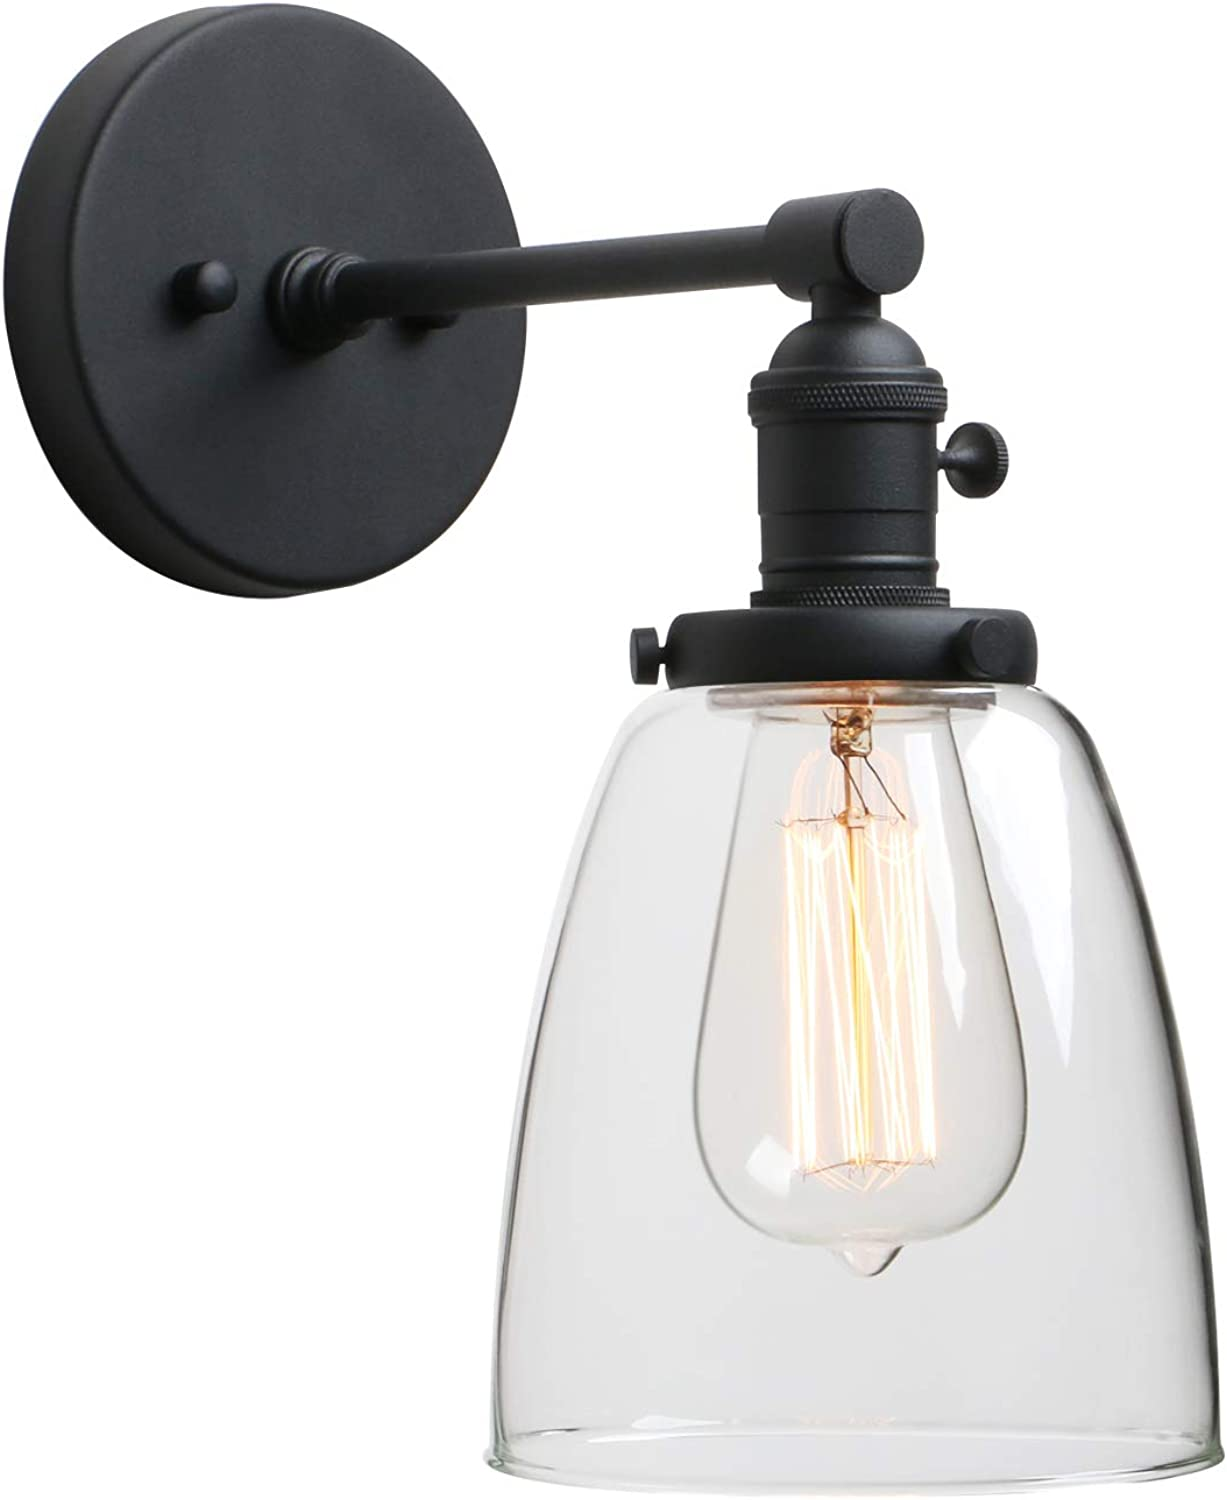 """Phansthy Industrial Wall Sconce Light 1-Light Black Sconce with 5.5"""" Dome Clear Glass Shade"""